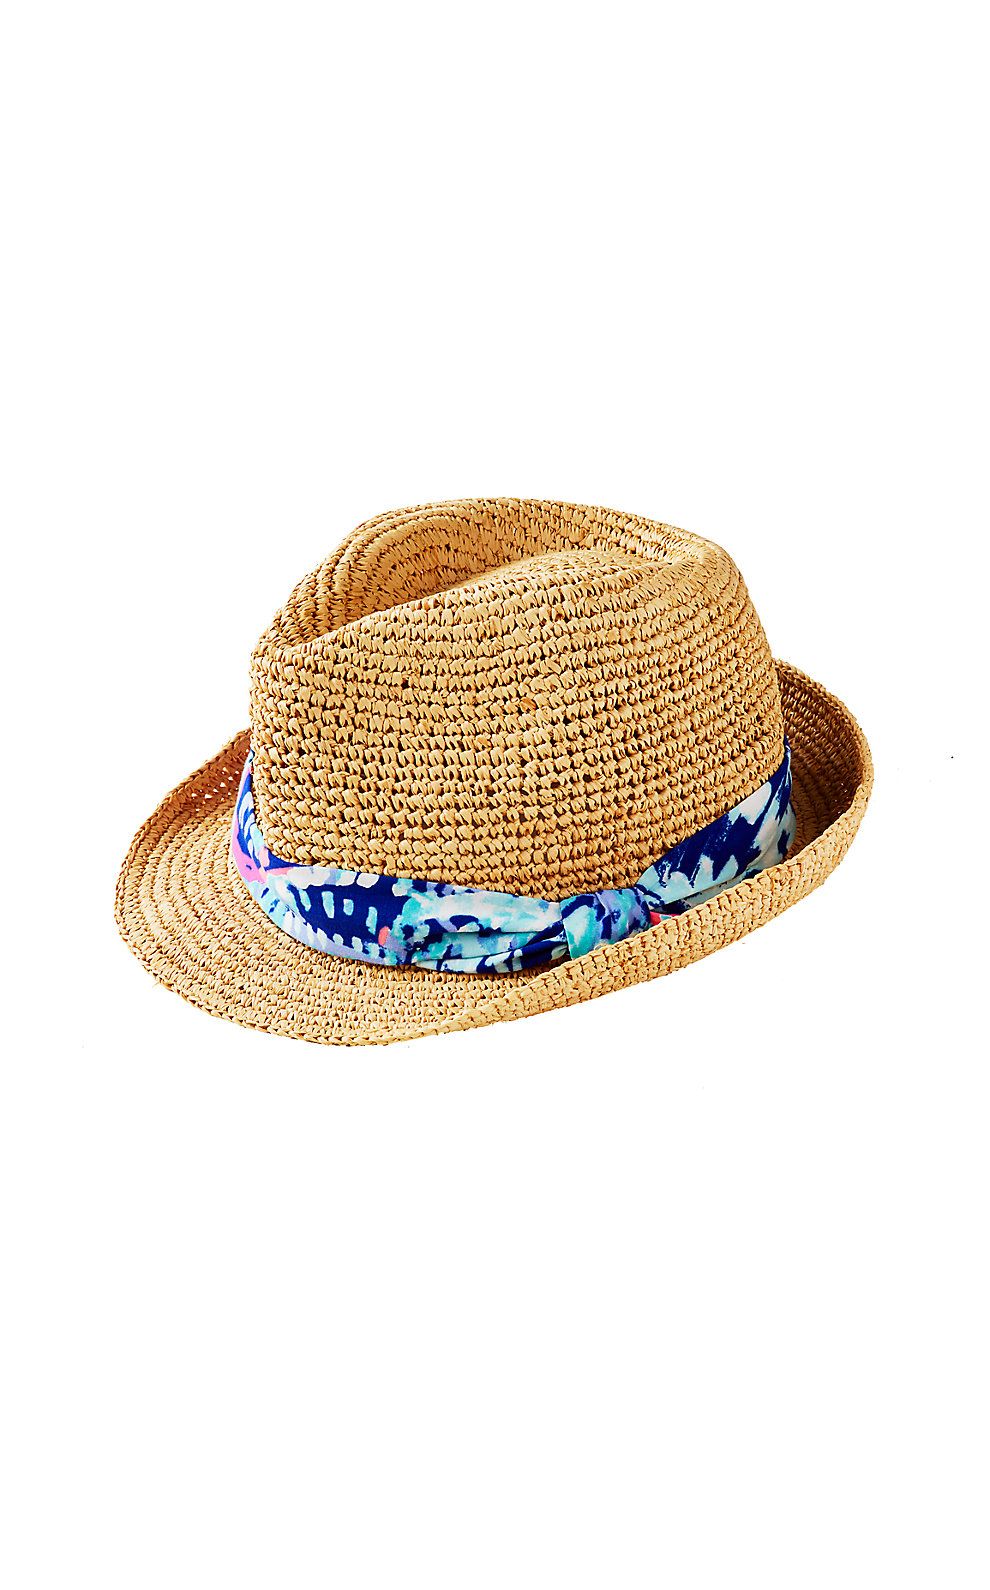 Lilly Pulitzer Lilly Pulitzer Poolside Hat